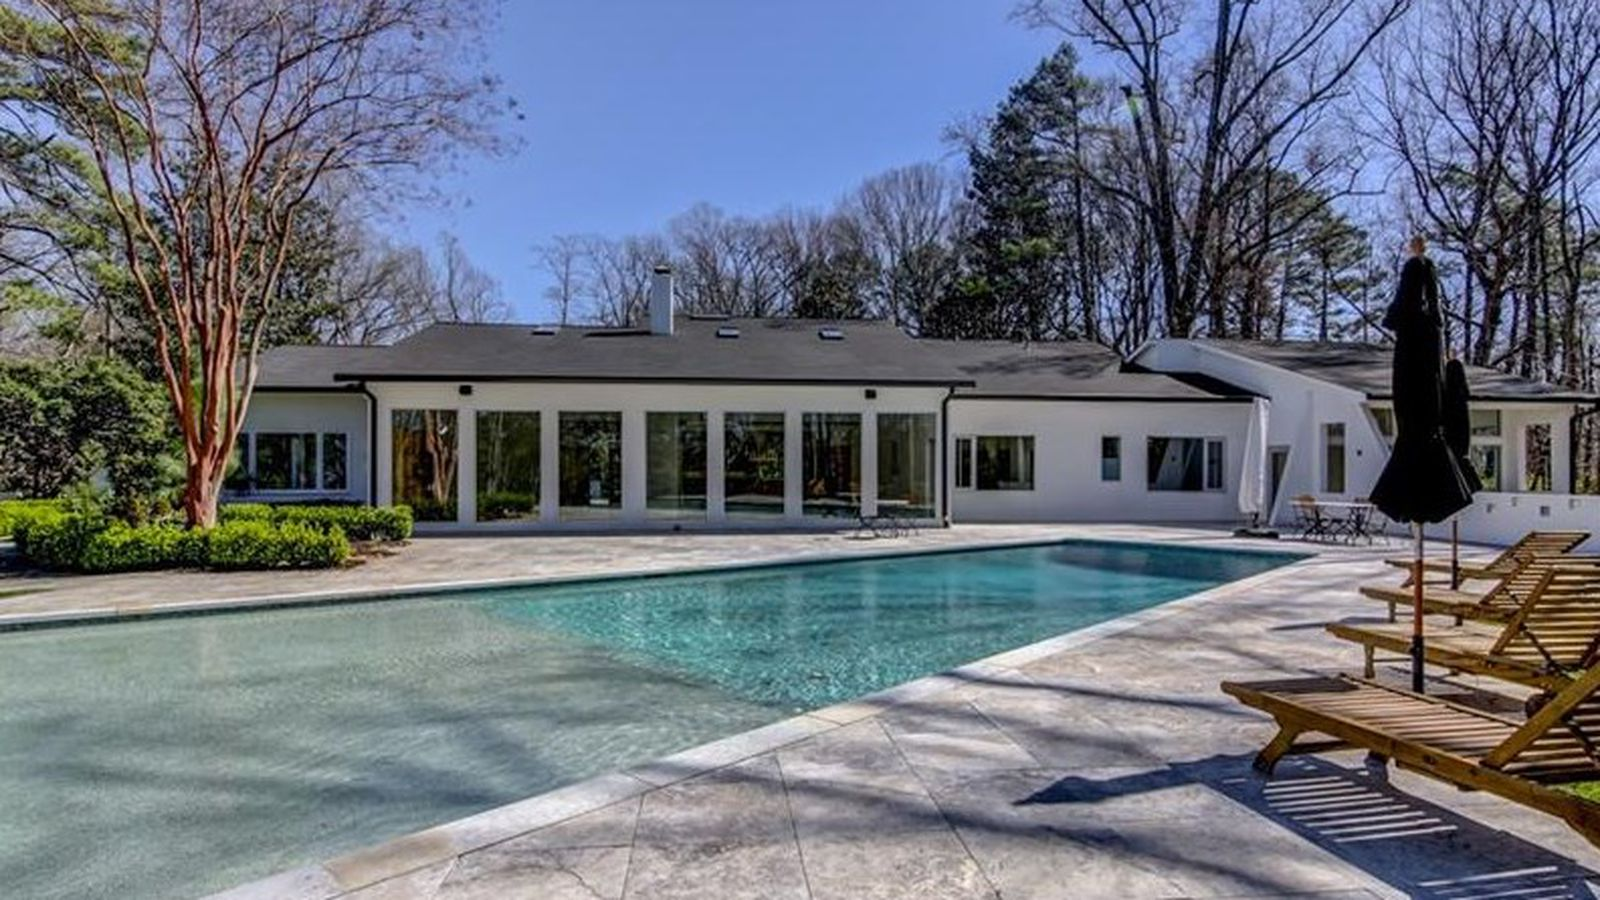 1970s buckhead contemporary with infinity pool strives for for Pool design 1970